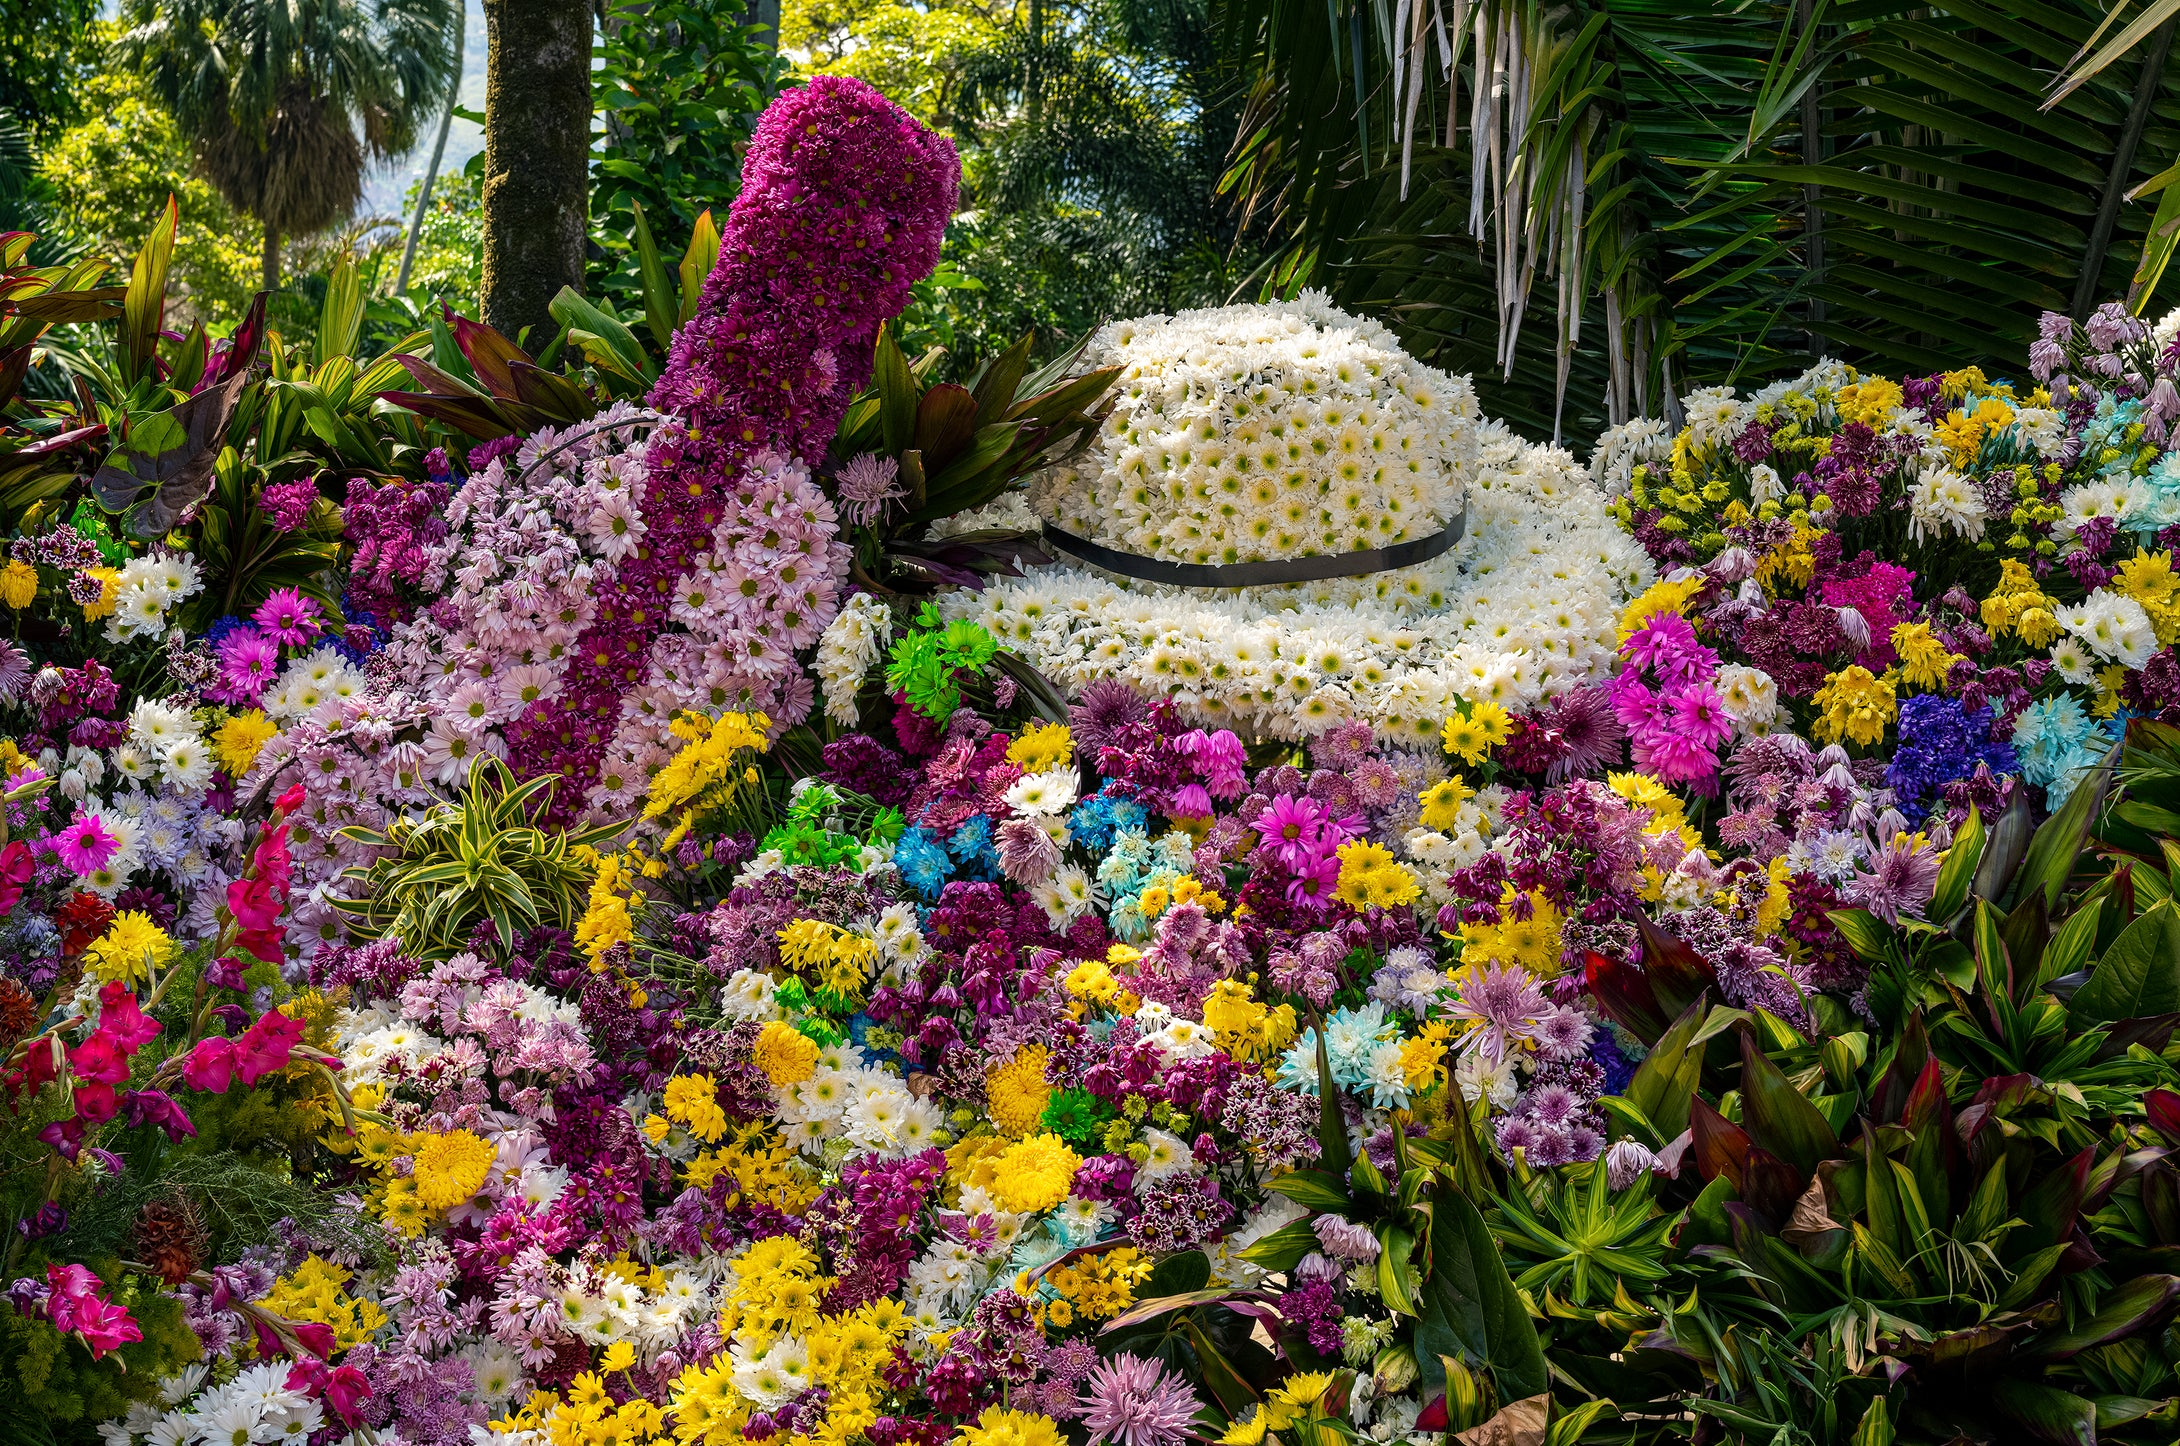 Festival of Flowers 04- Medellin 2019